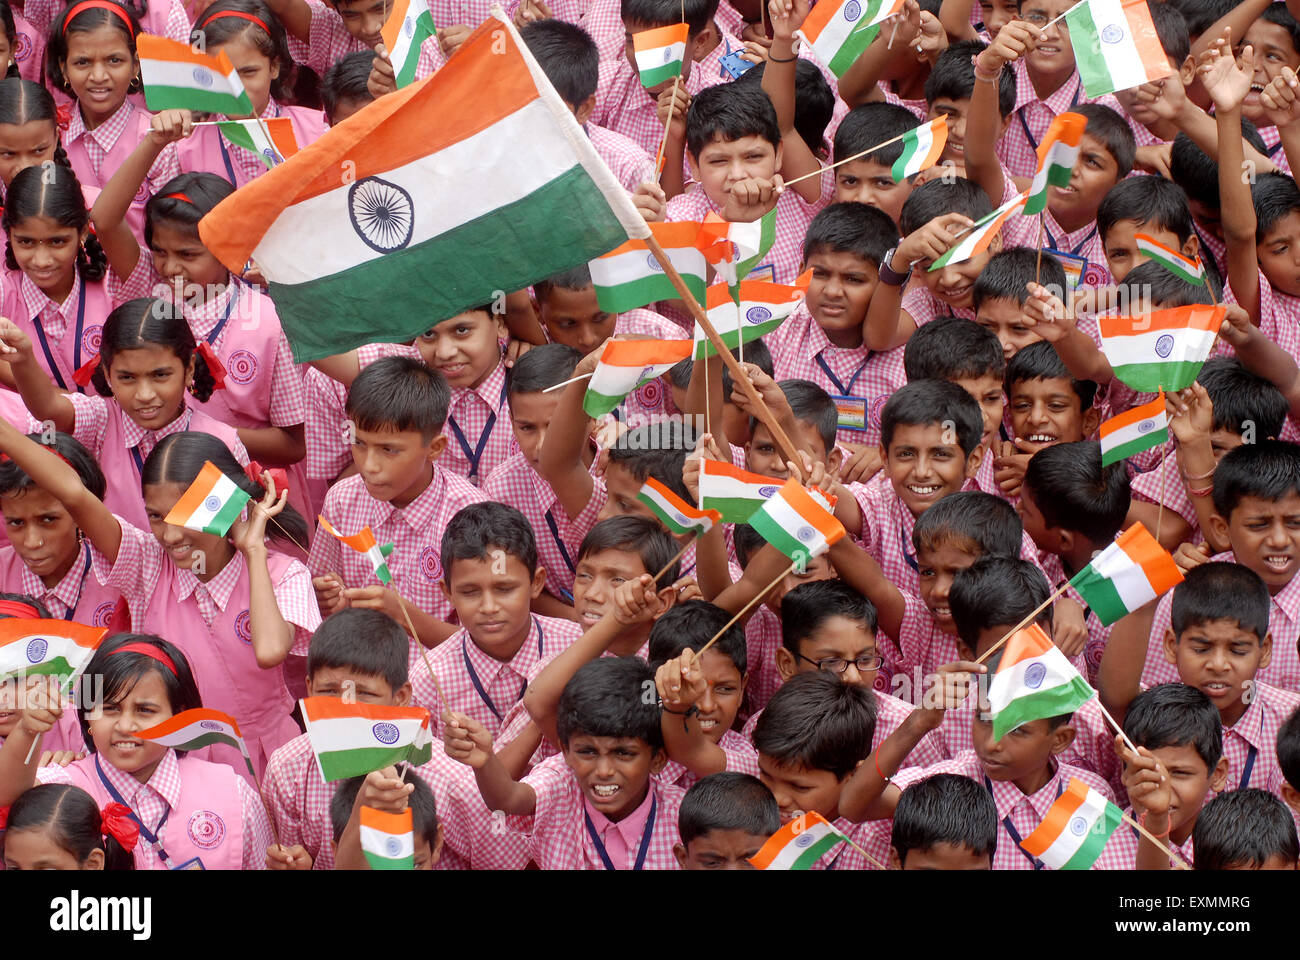 School children celebrate Indian Independence Day by waving Indian tri color flag in Bombay Mumbai ; Maharashtra - Stock Image